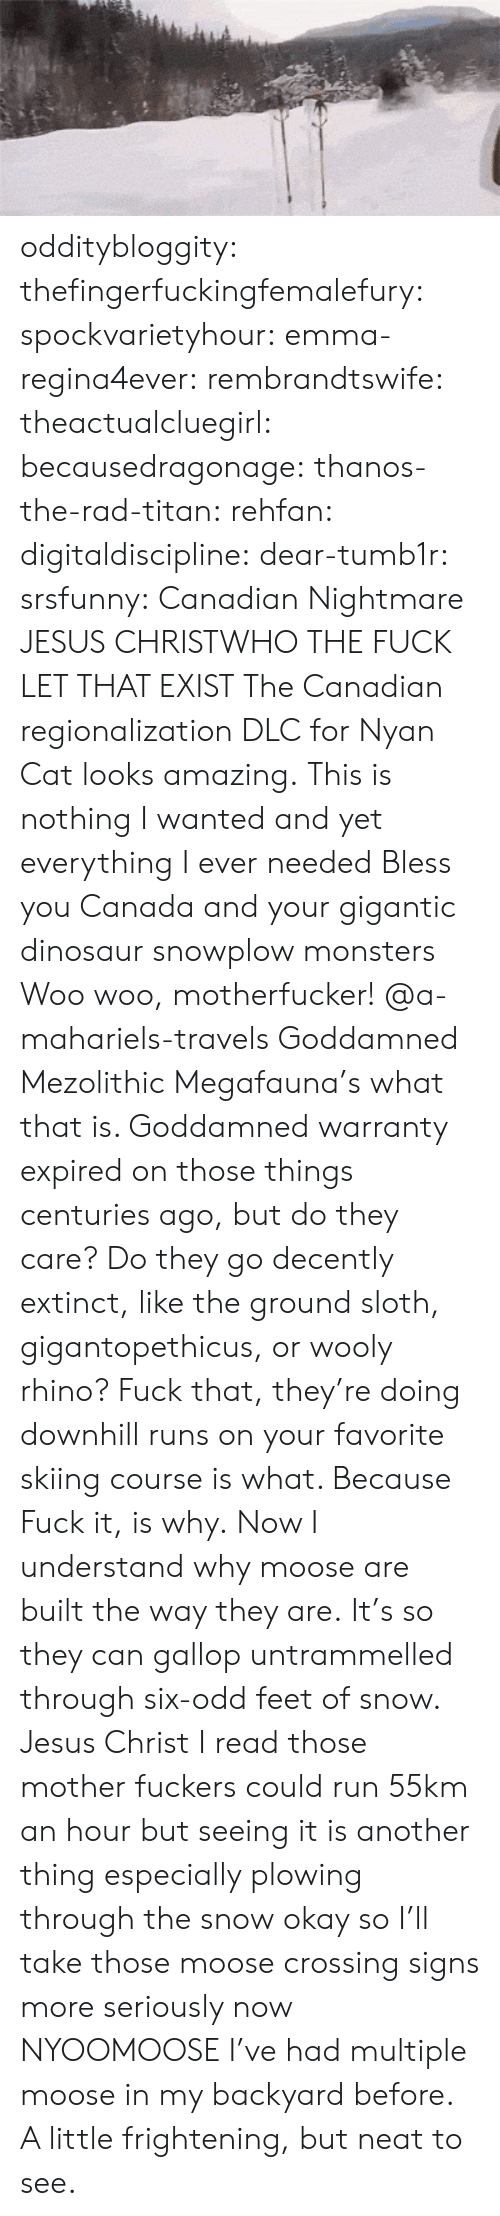 Dinosaur, Jesus, and Run: odditybloggity: thefingerfuckingfemalefury:  spockvarietyhour:  emma-regina4ever:  rembrandtswife:  theactualcluegirl:  becausedragonage:  thanos-the-rad-titan:  rehfan:  digitaldiscipline:  dear-tumb1r:  srsfunny:  Canadian Nightmare  JESUS CHRISTWHO THE FUCK LET THAT EXIST  The Canadian regionalization DLC for Nyan Cat looks amazing.  This is nothing I wanted and yet everything I ever needed Bless you Canada and your gigantic dinosaur snowplow monsters  Woo woo, motherfucker!  @a-mahariels-travels  Goddamned Mezolithic Megafauna's what that is.  Goddamned warranty expired on those things centuries ago, but do they care?  Do they go decently extinct, like the ground sloth, gigantopethicus, or wooly rhino?  Fuck that, they're doing downhill runs on your favorite skiing course is what.  Because Fuck it, is why.  Now I understand why moose are built the way they are. It's so they can gallop untrammelled through six-odd feet of snow.  Jesus Christ I read those mother fuckers could run 55km an hour but seeing it is another thing especially plowing through the snow  okay so I'll take those moose crossing signs more seriously now  NYOOMOOSE  I've had multiple moose in my backyard before. A little frightening, but neat to see.